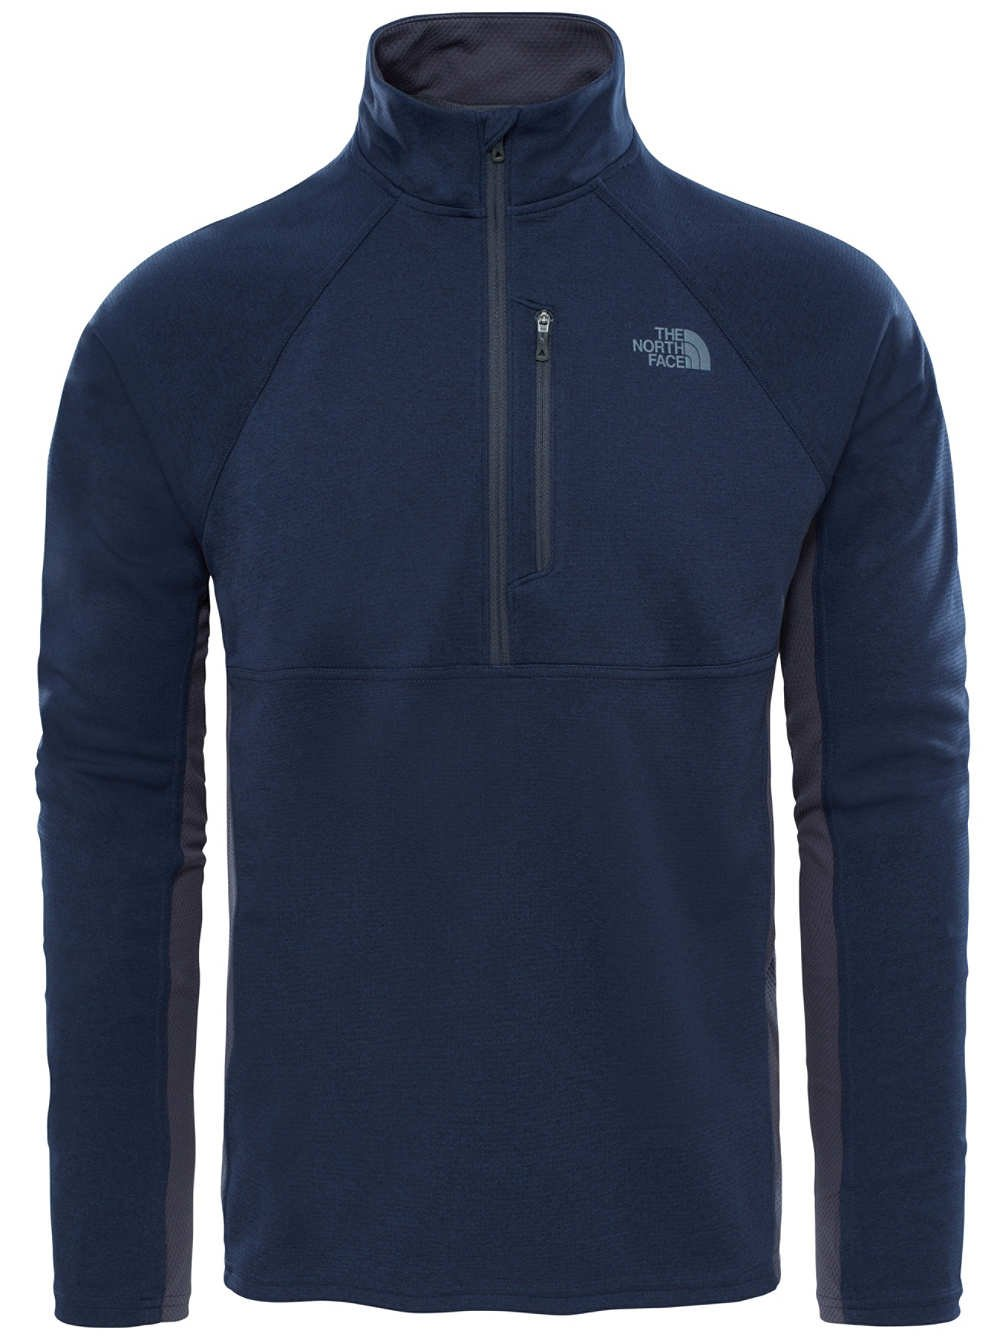 The North Face, M Ambition 1/4 Zip, Maglia a Maniche Lunghe con Cerniera 1/4, Uomo 2TZL